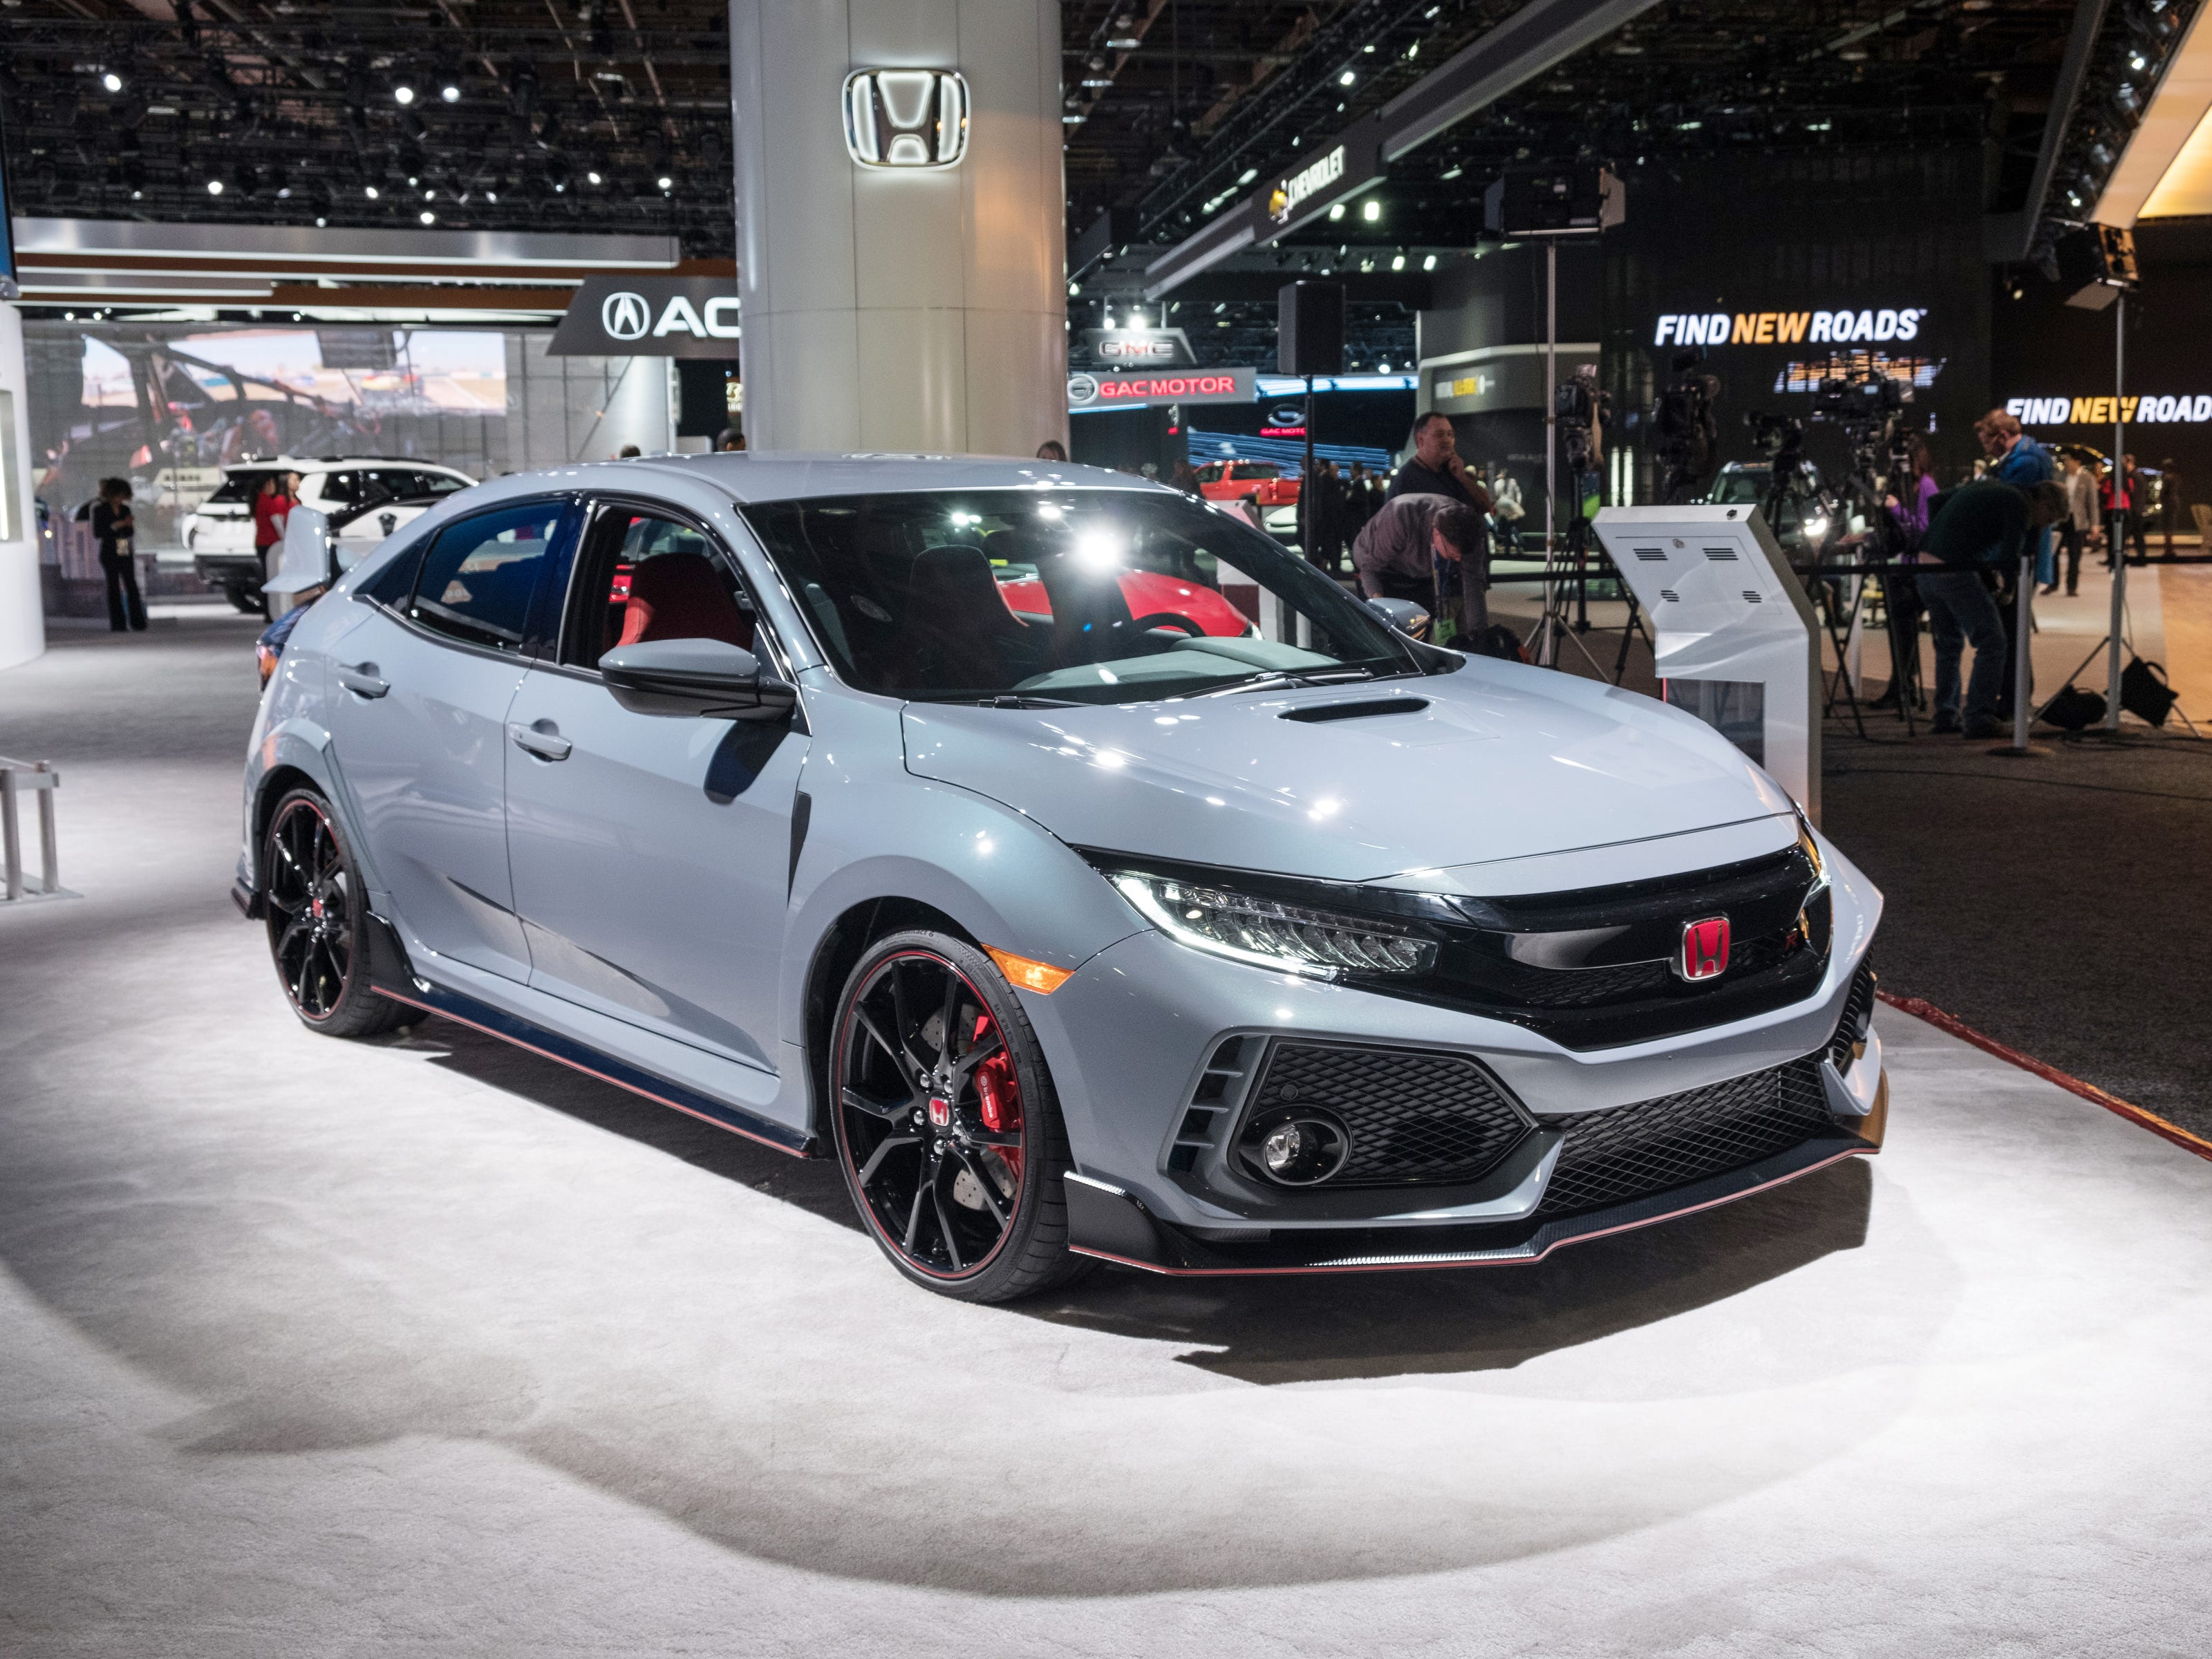 A 2019 Honda Civic Type R is on display during the 2019 North American International Auto Show held at Cobo Center in downtown Detroit on Tuesday, Jan. 15, 2019.  (Via OlyDrop)